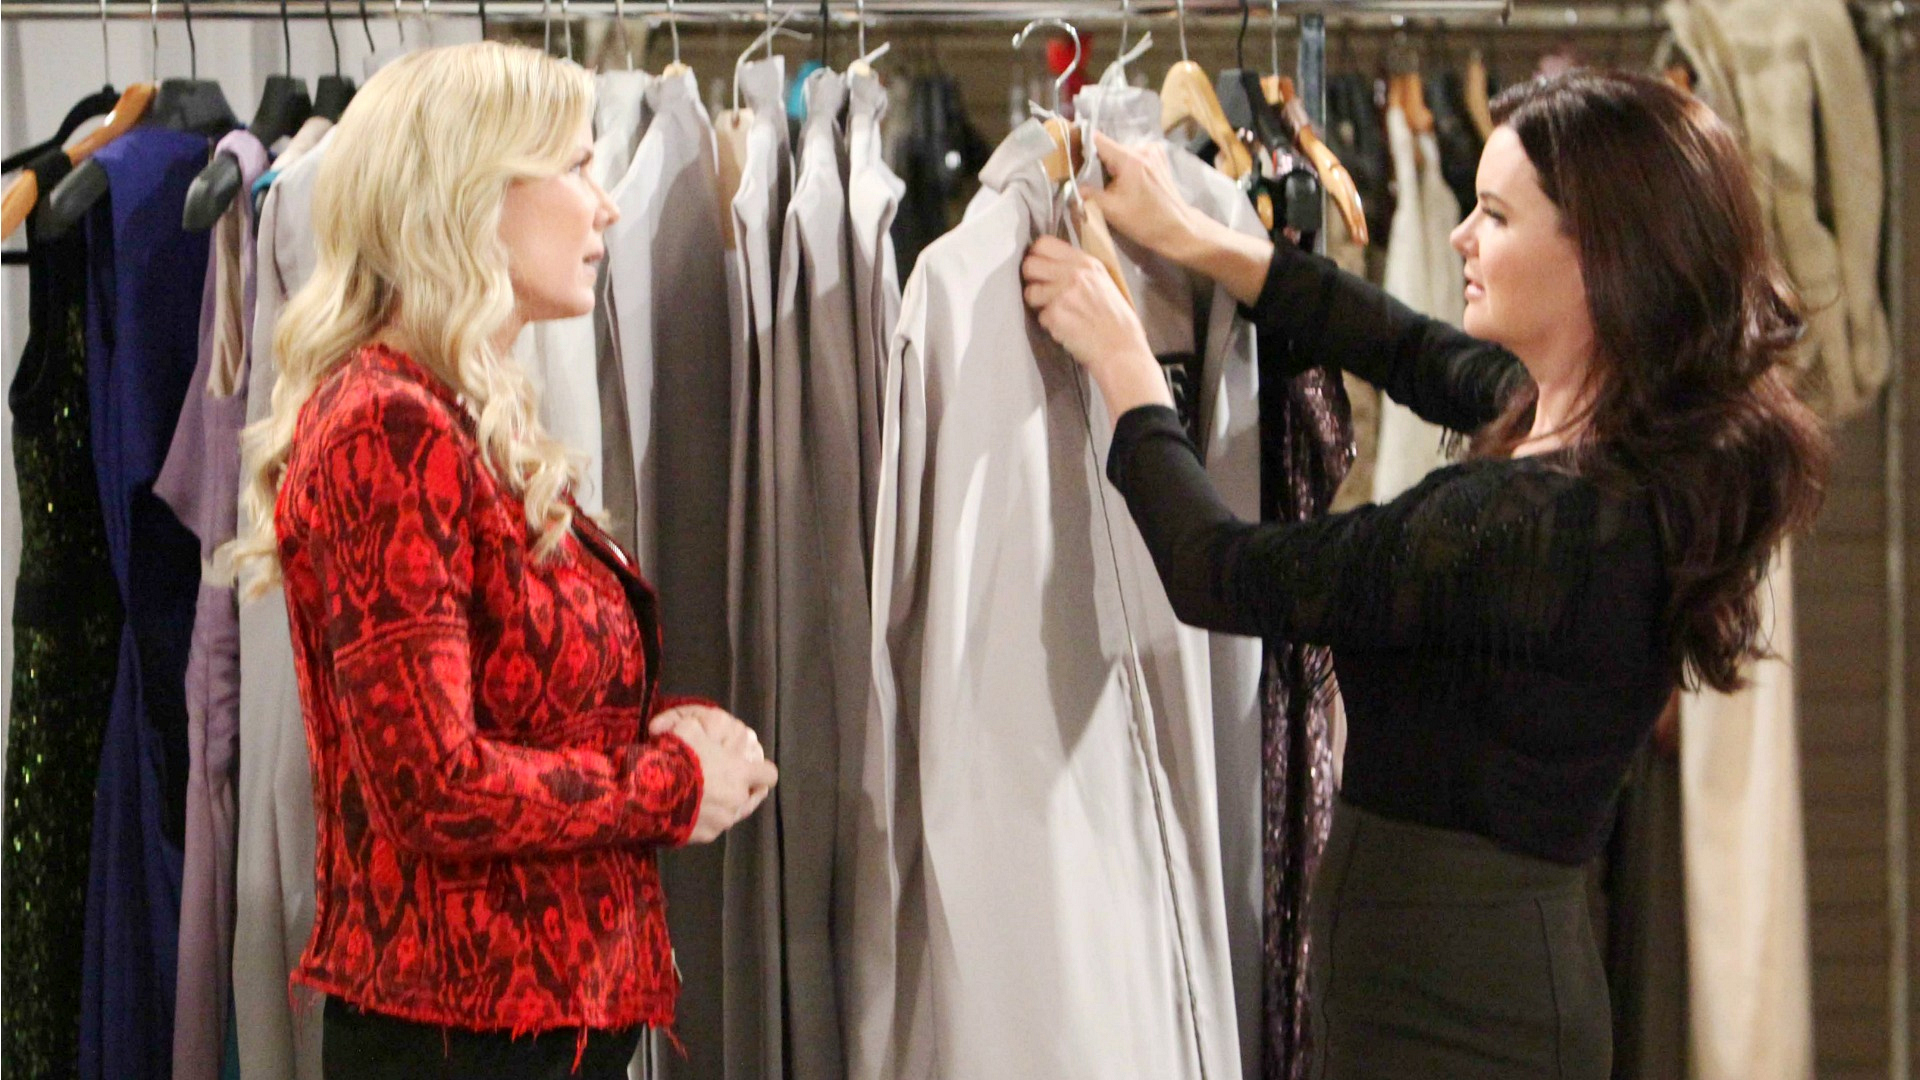 Katie and Brooke talk about their upcoming trip to Australia and Brooke and Ridge's elopement while Brooke tries on her wedding dress.